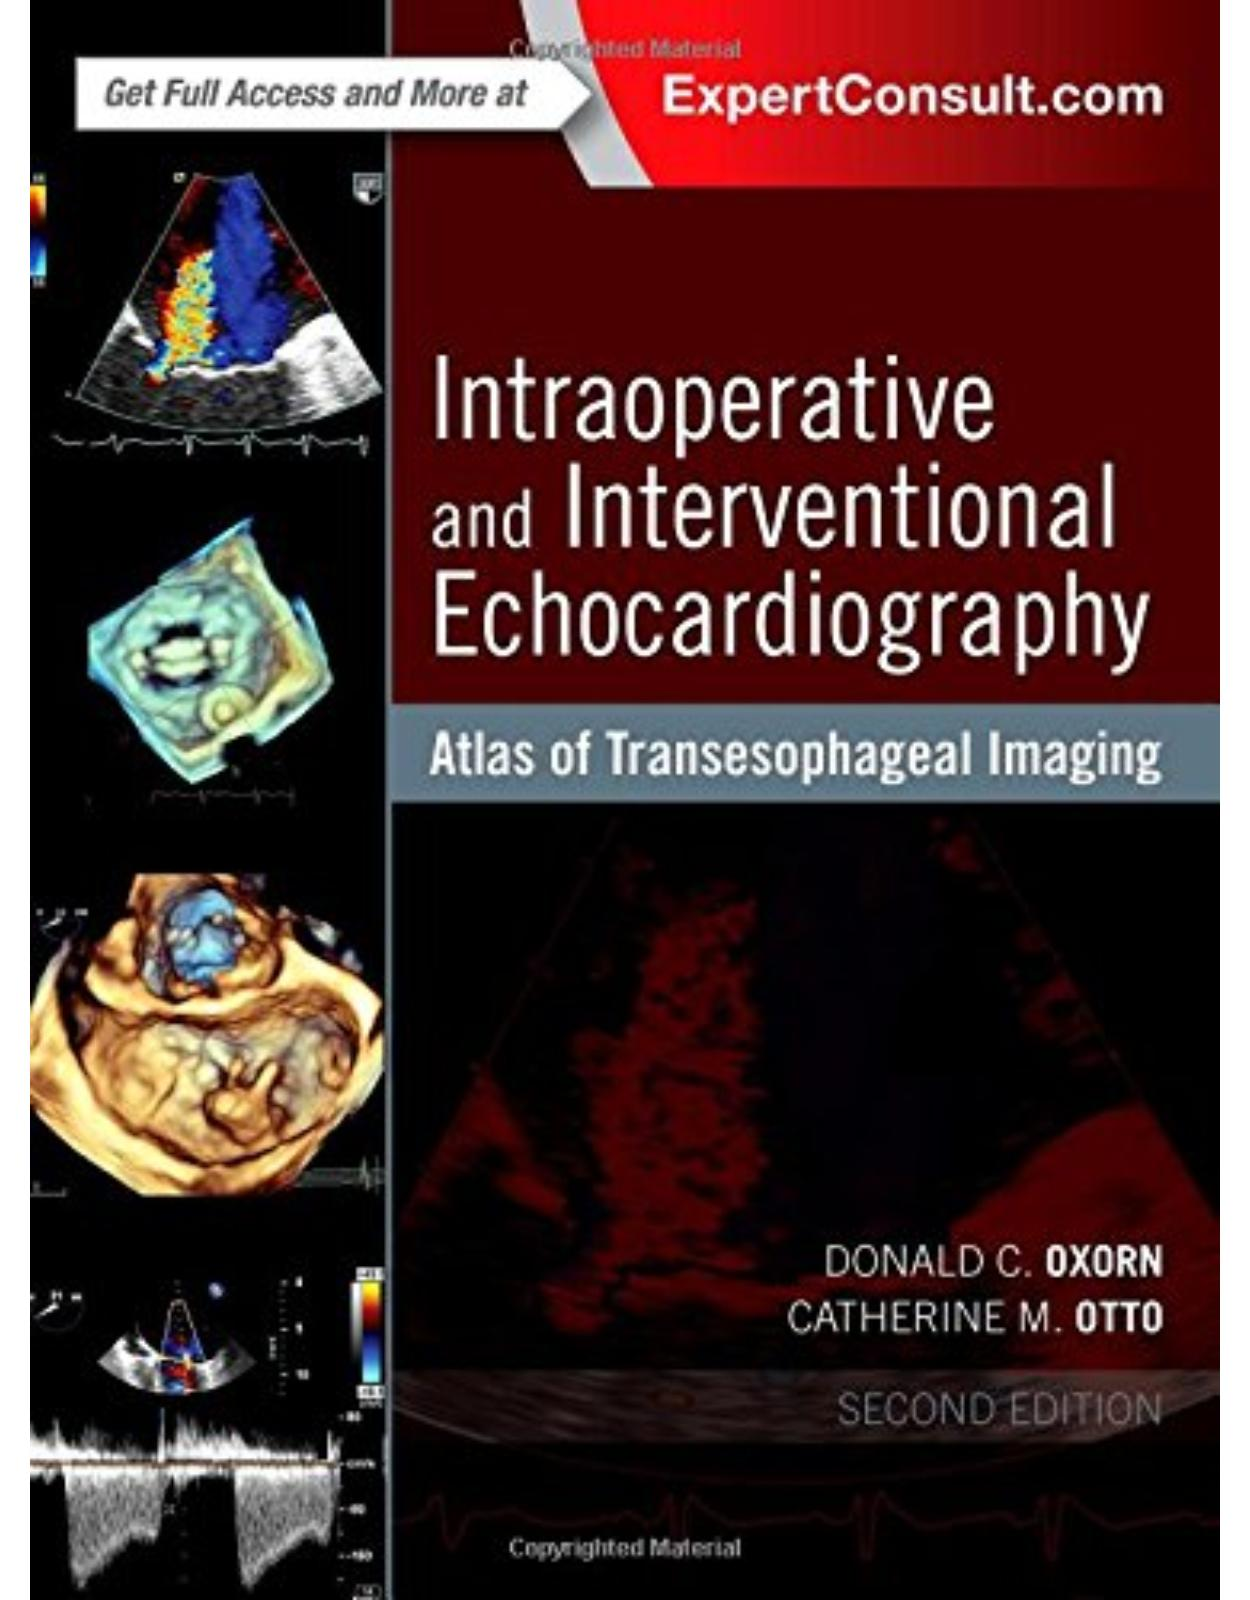 Intraoperative and Interventional Echocardiography: Atlas of Transesophageal Imaging, 2e